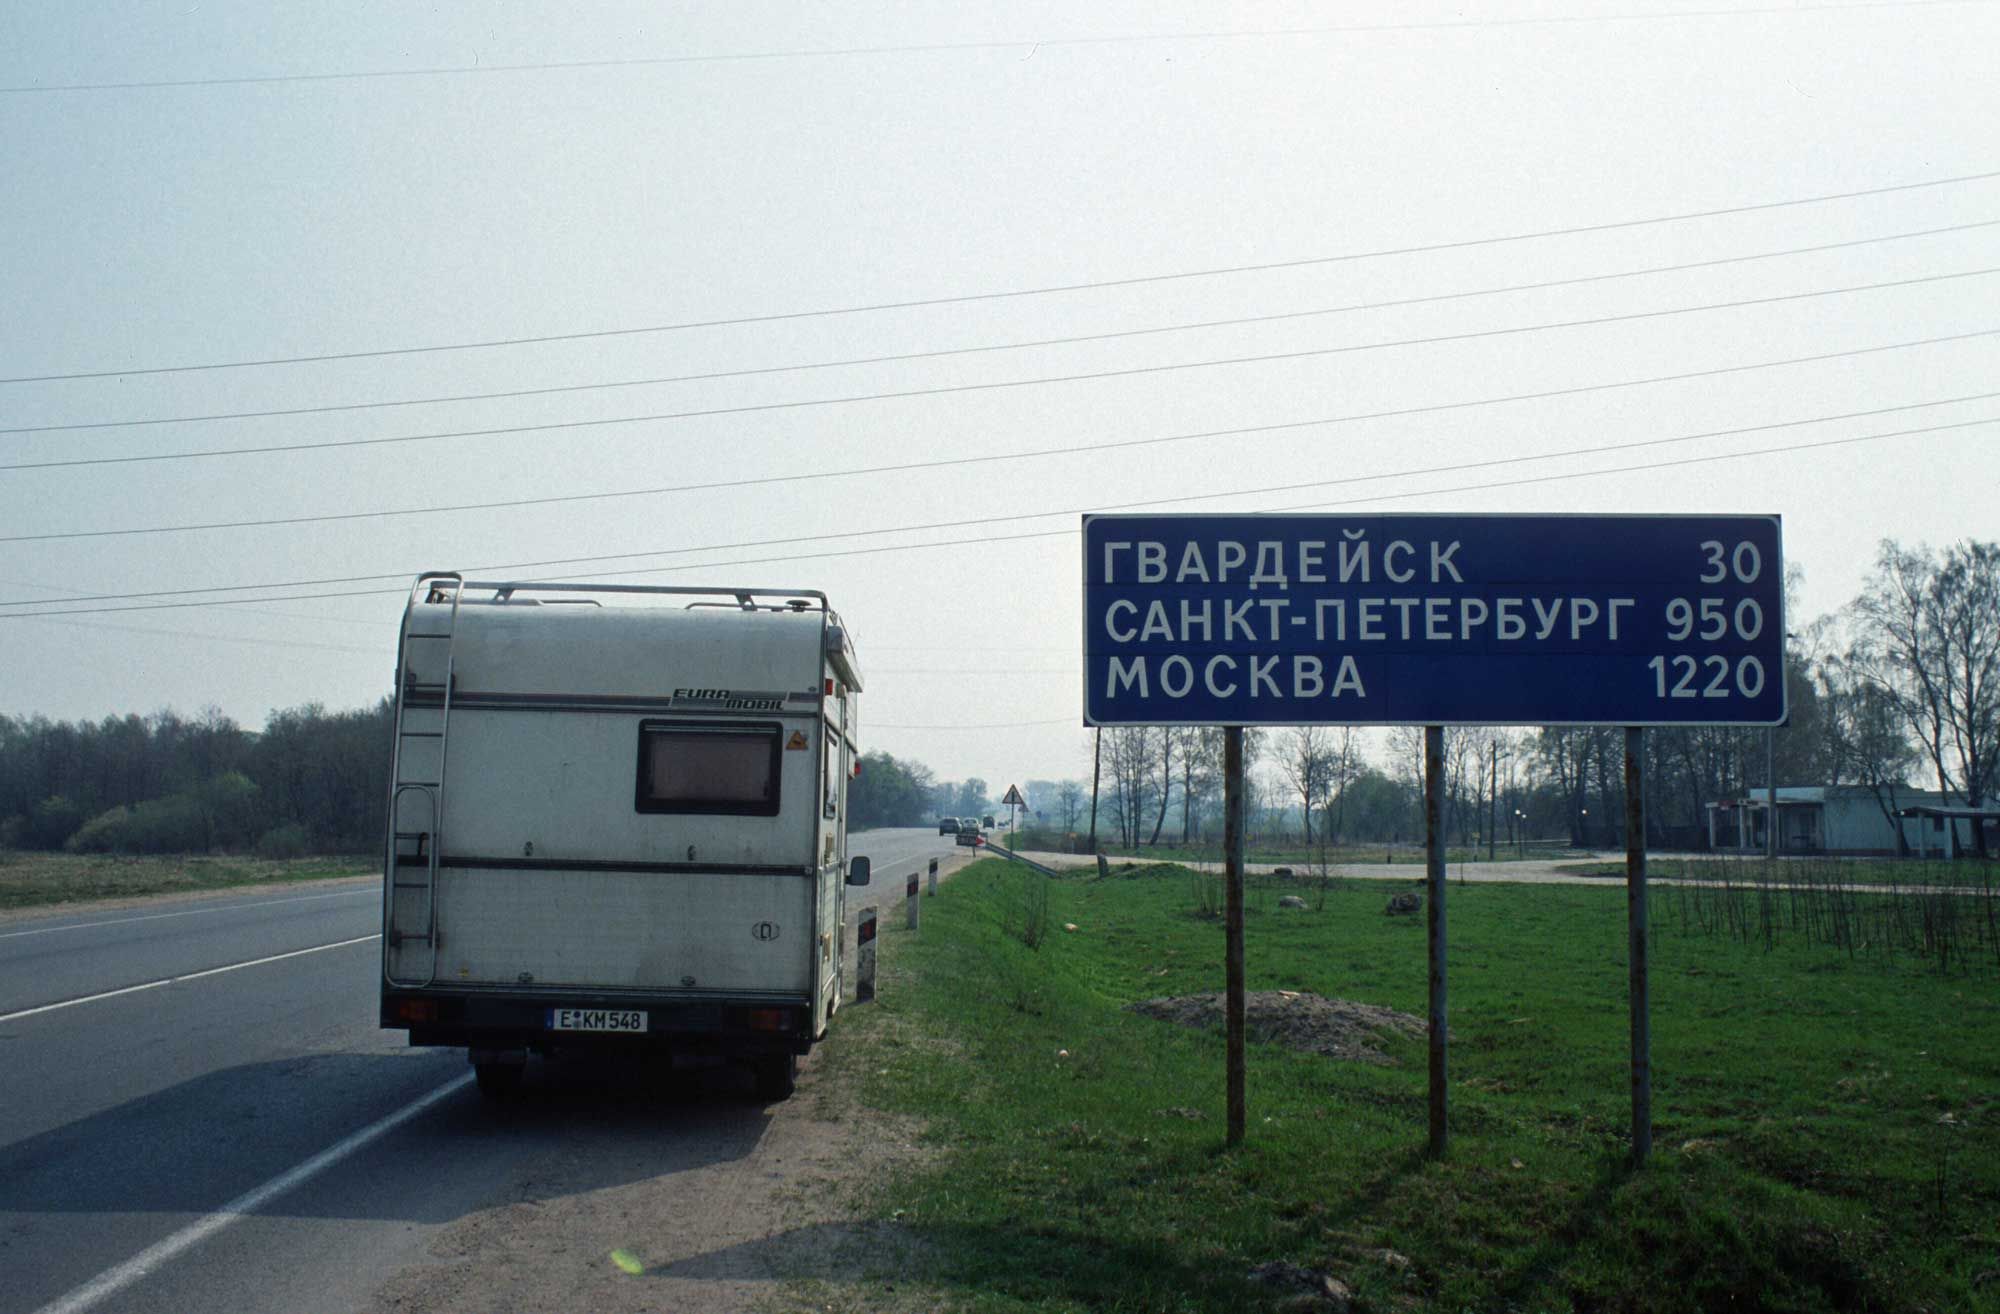 Wohnmobil in Russland